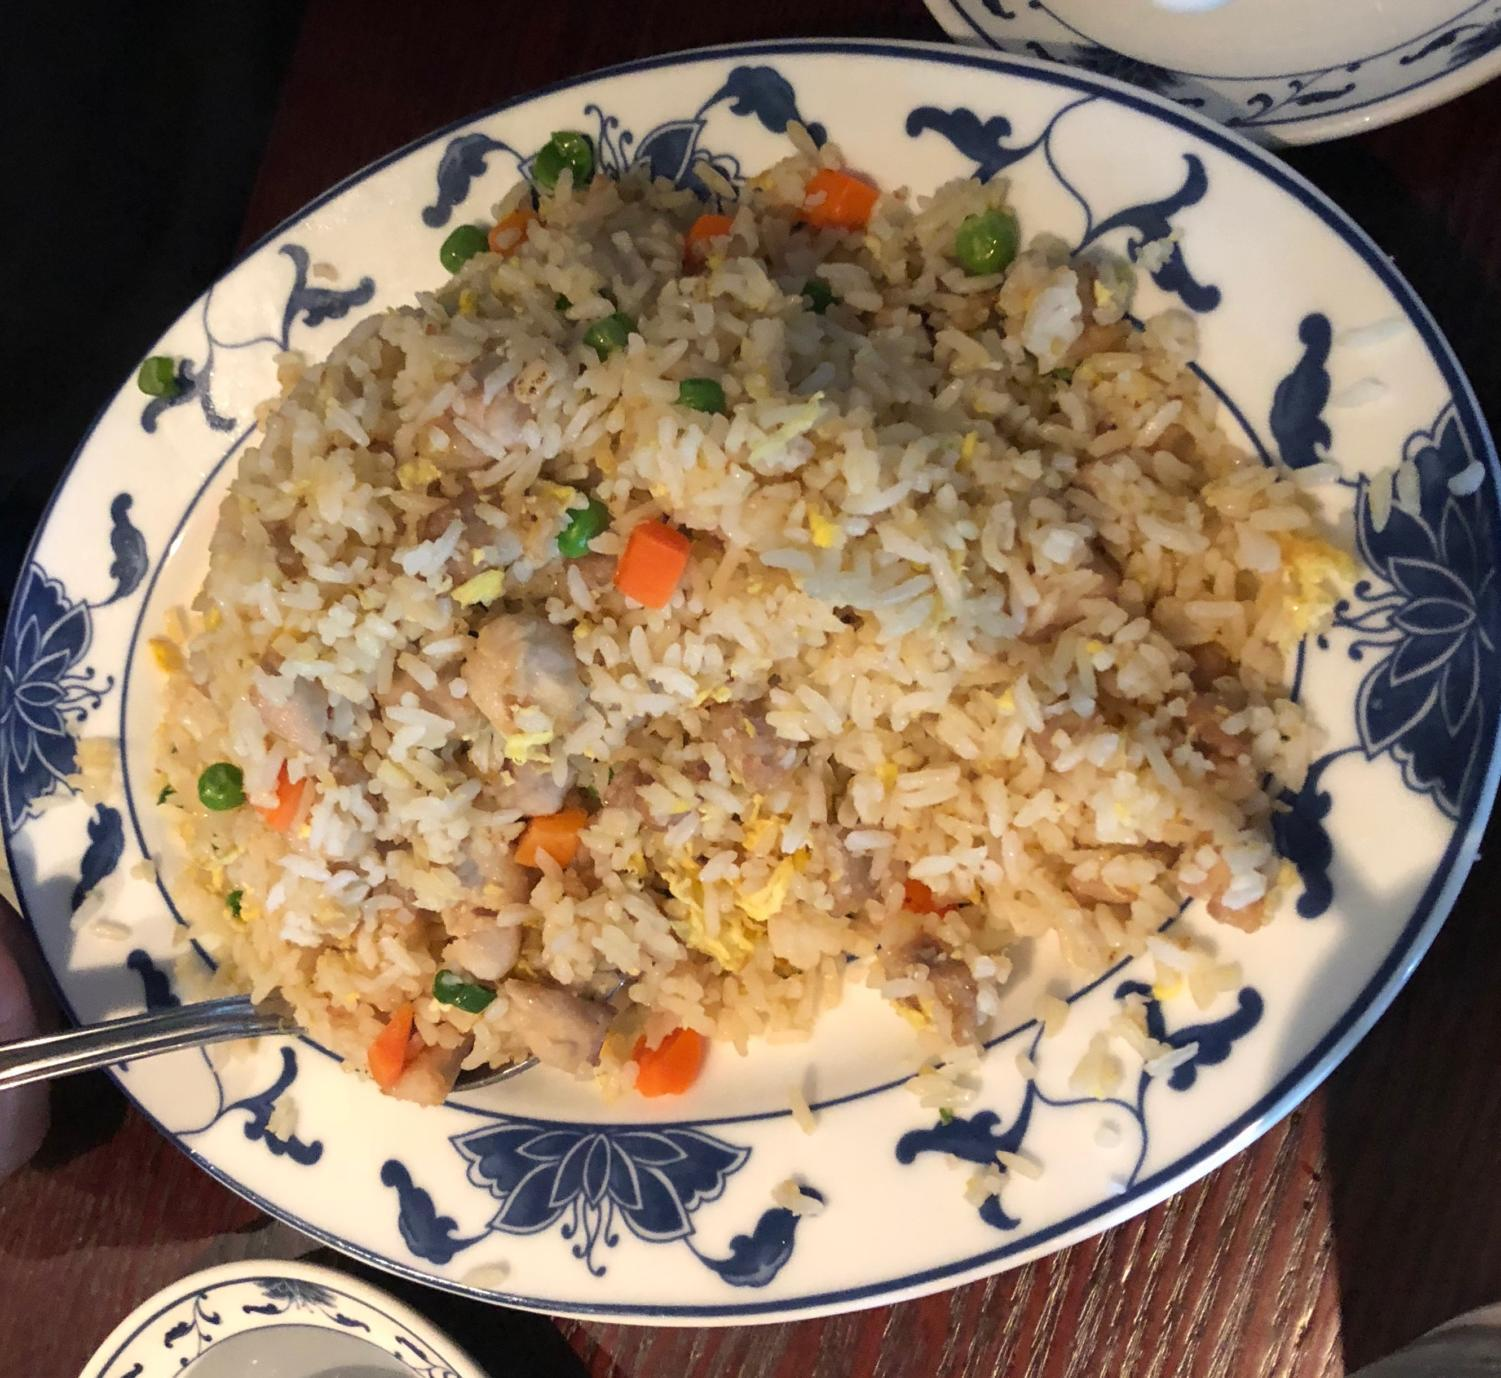 Gin Mon's chicken fried rice: a stir fried mix of peas, egg, chicken, carrot, and rice.